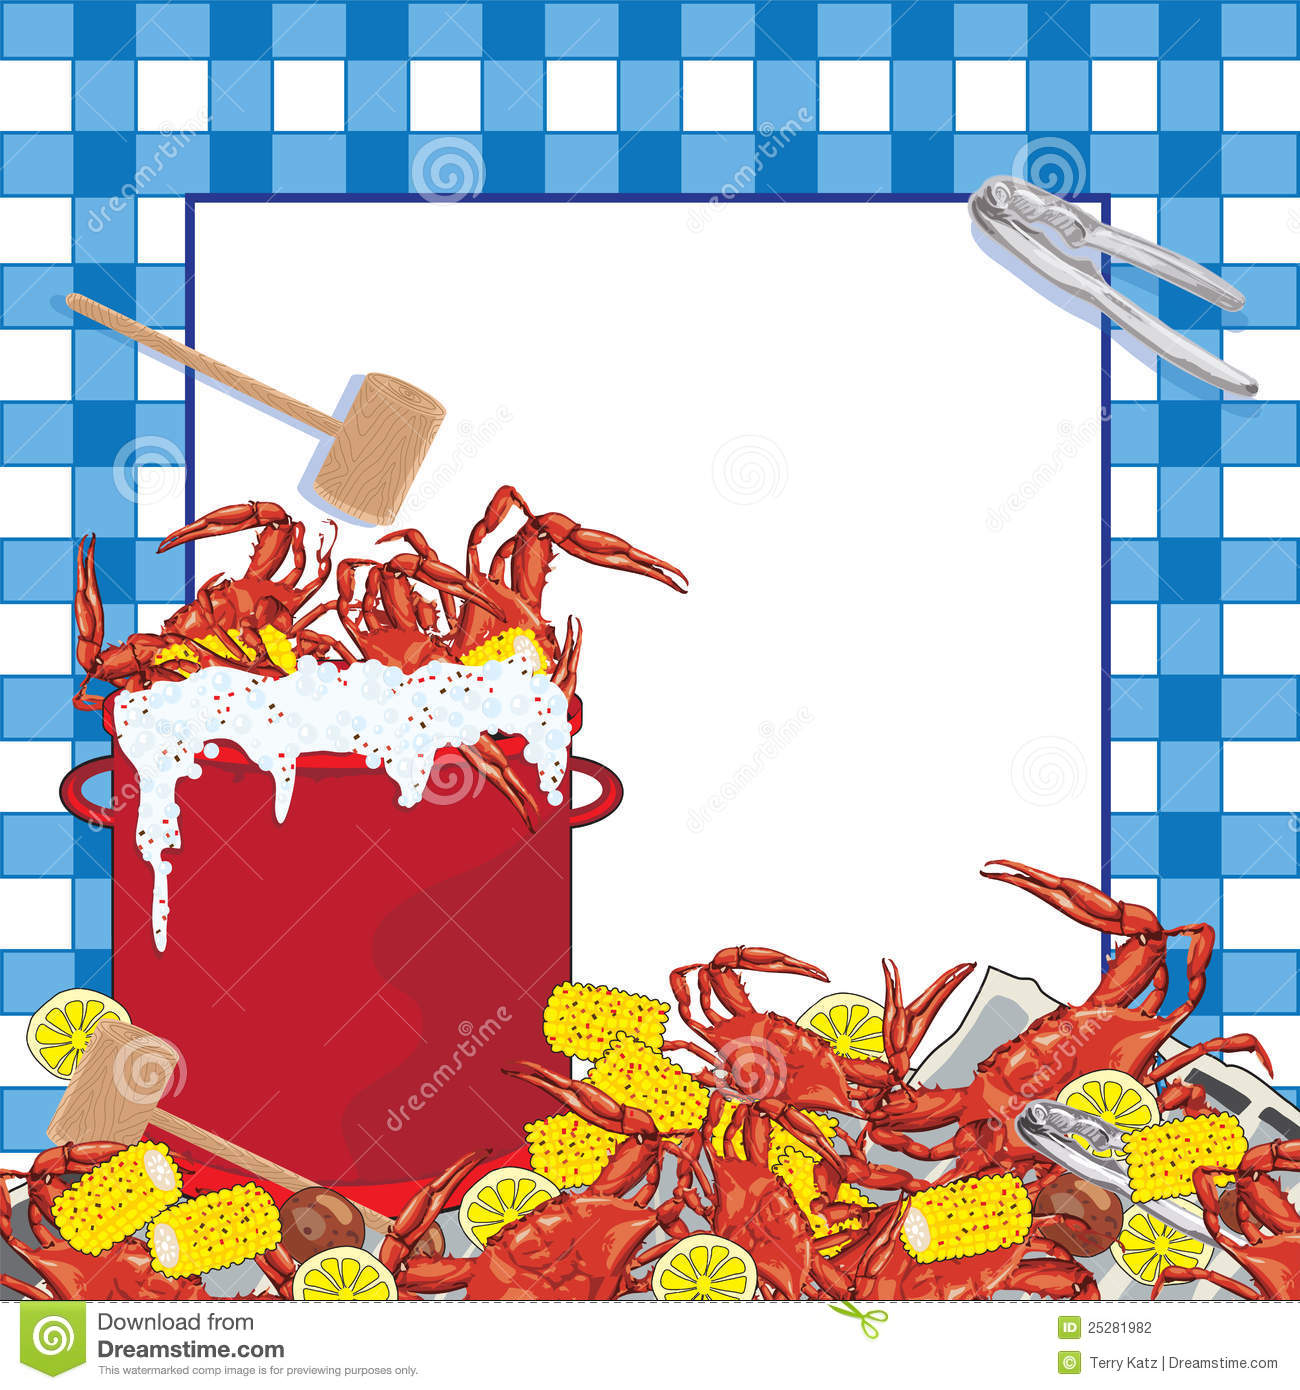 Super fun Crab Boil party invitation. Hot bubbling red pot of crab ...